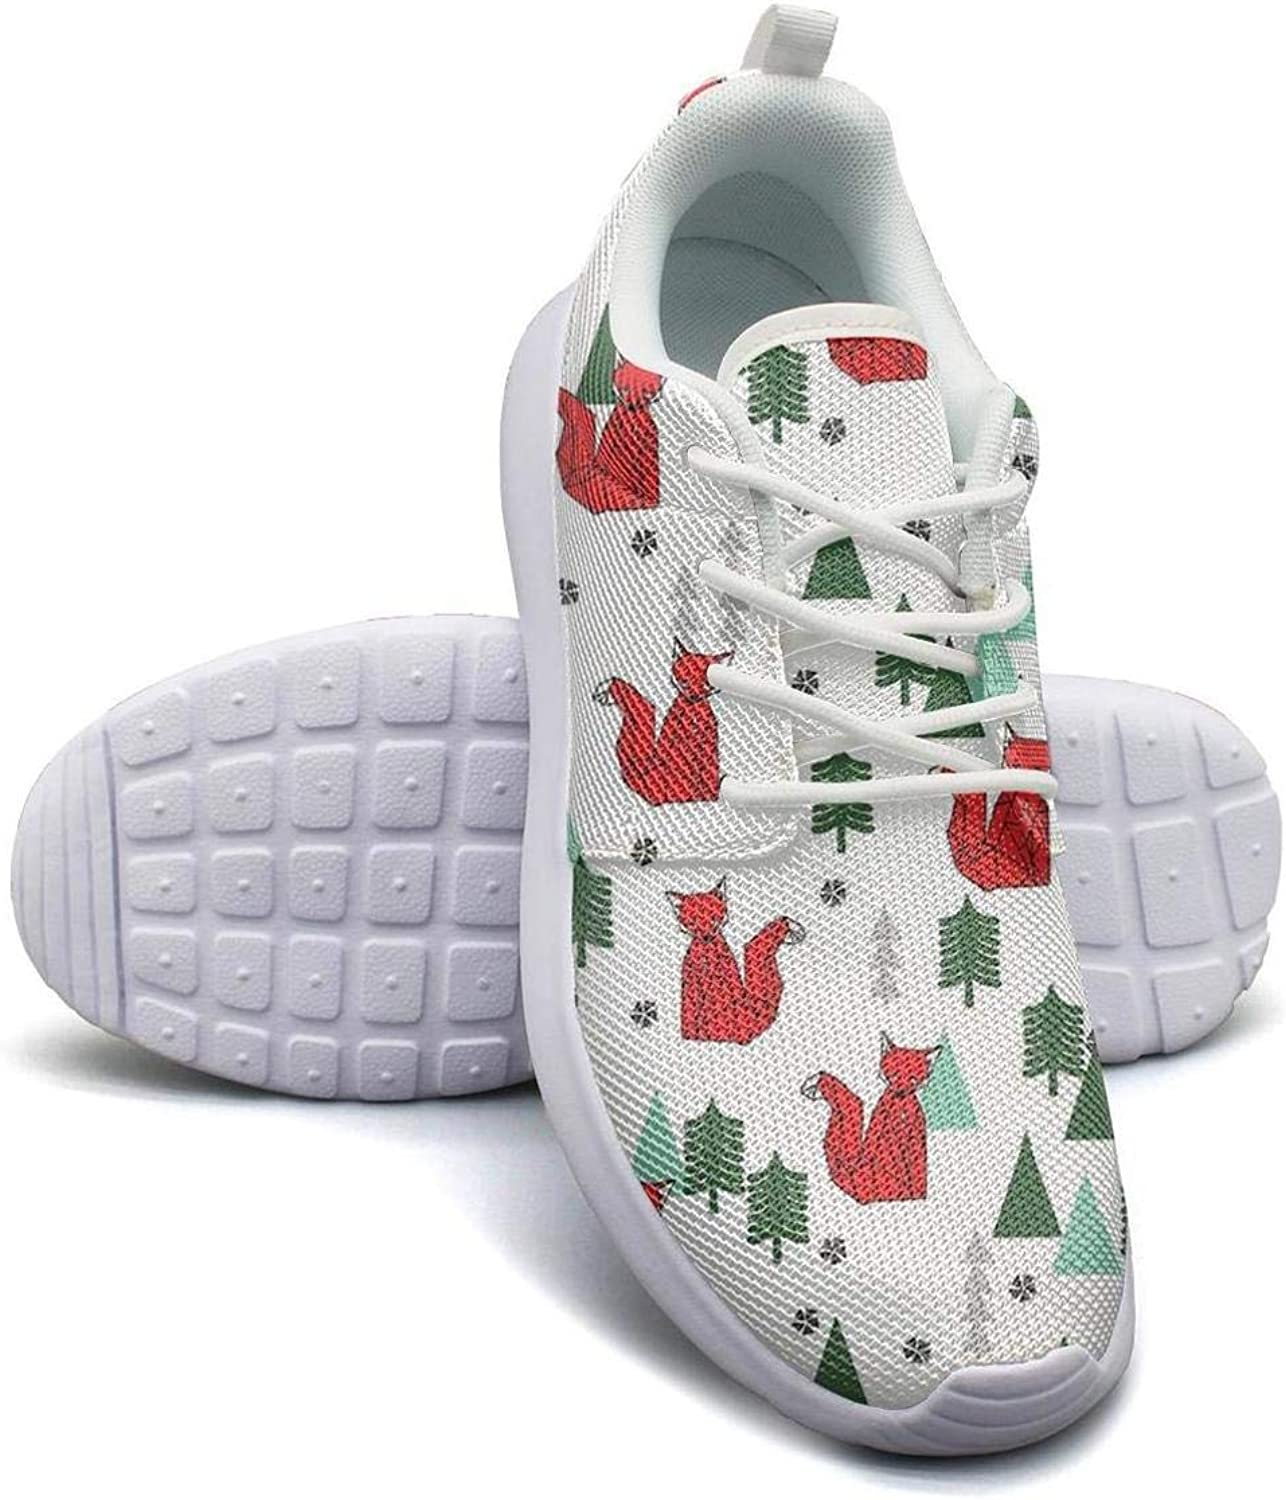 Gjsonmv Cute Christmas Fox mesh Lightweight shoes for Women Summer Sports Basketball Sneakers shoes